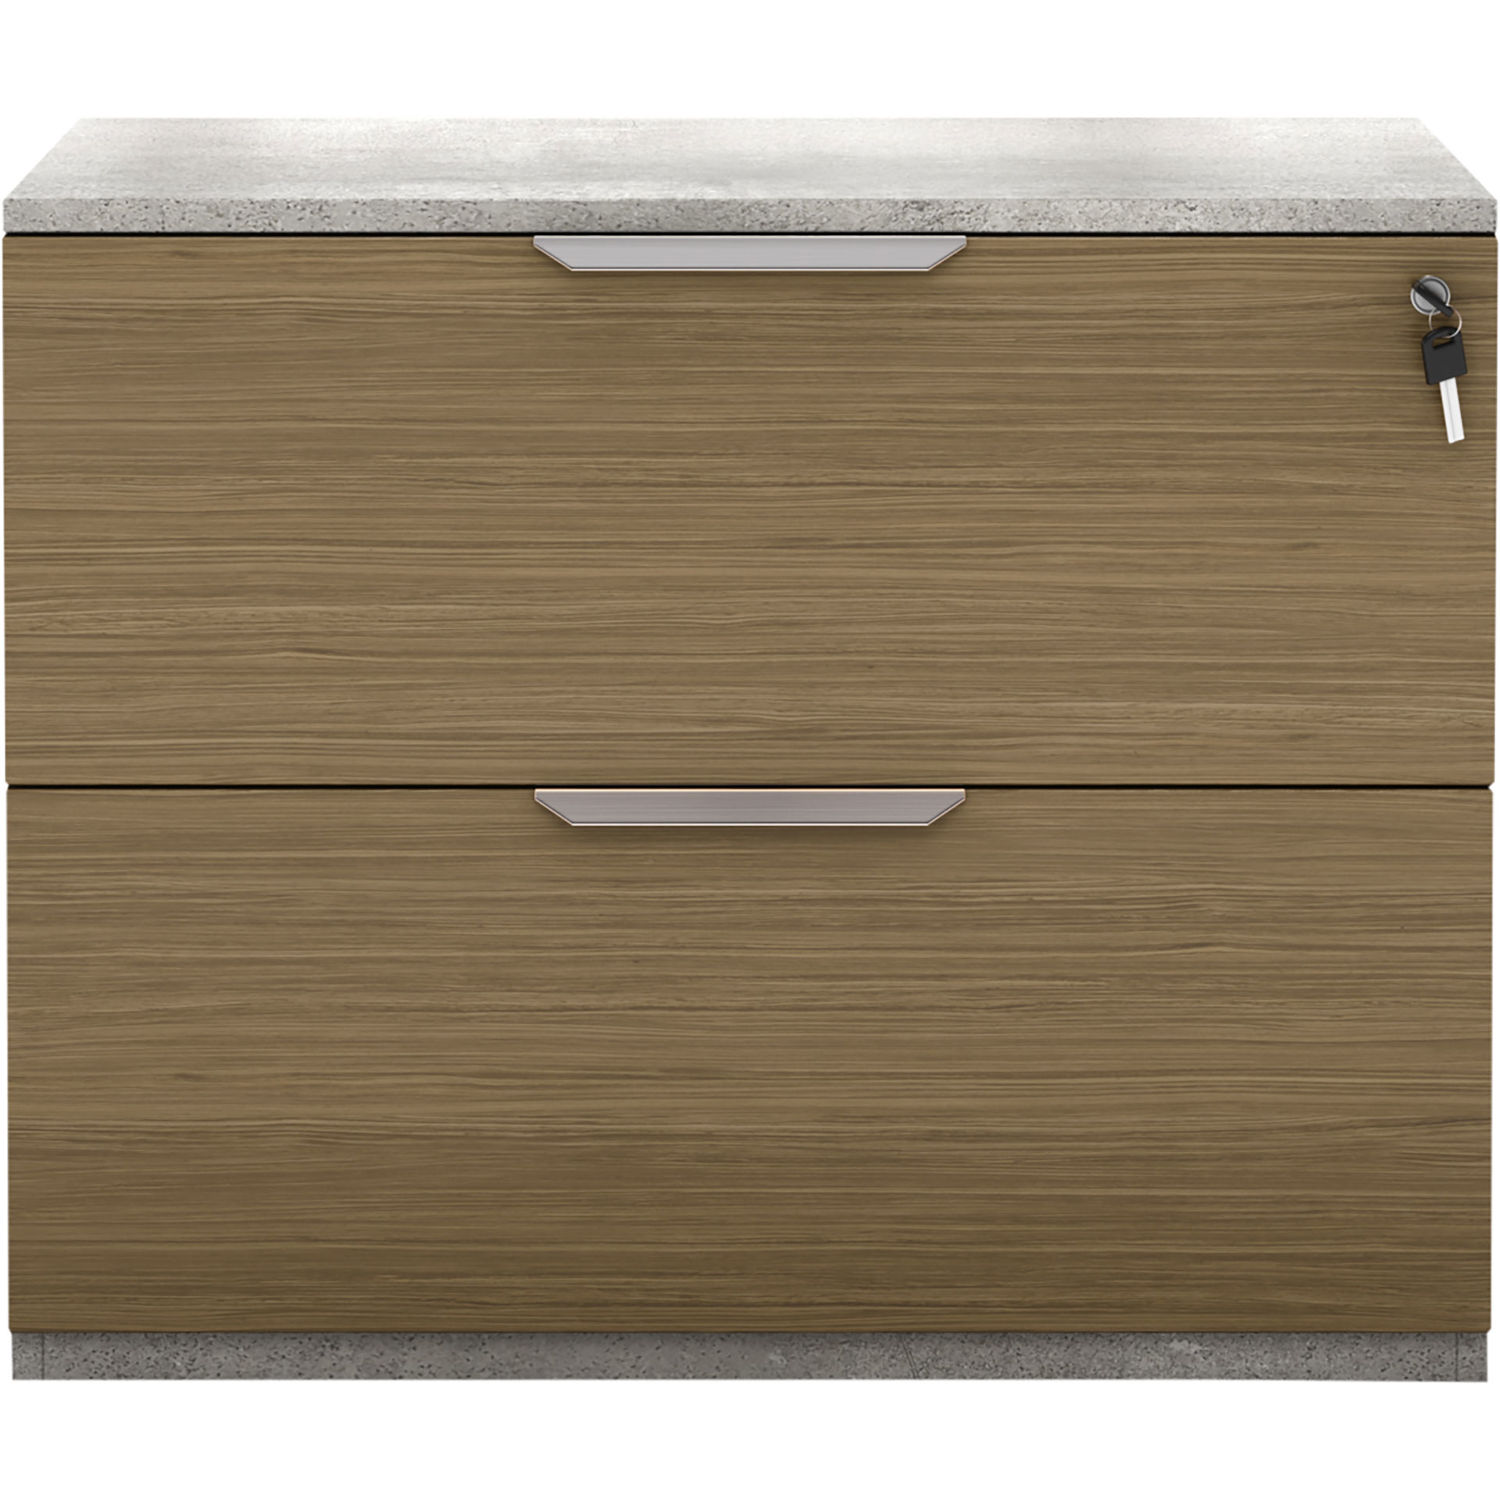 File Cabinets Category